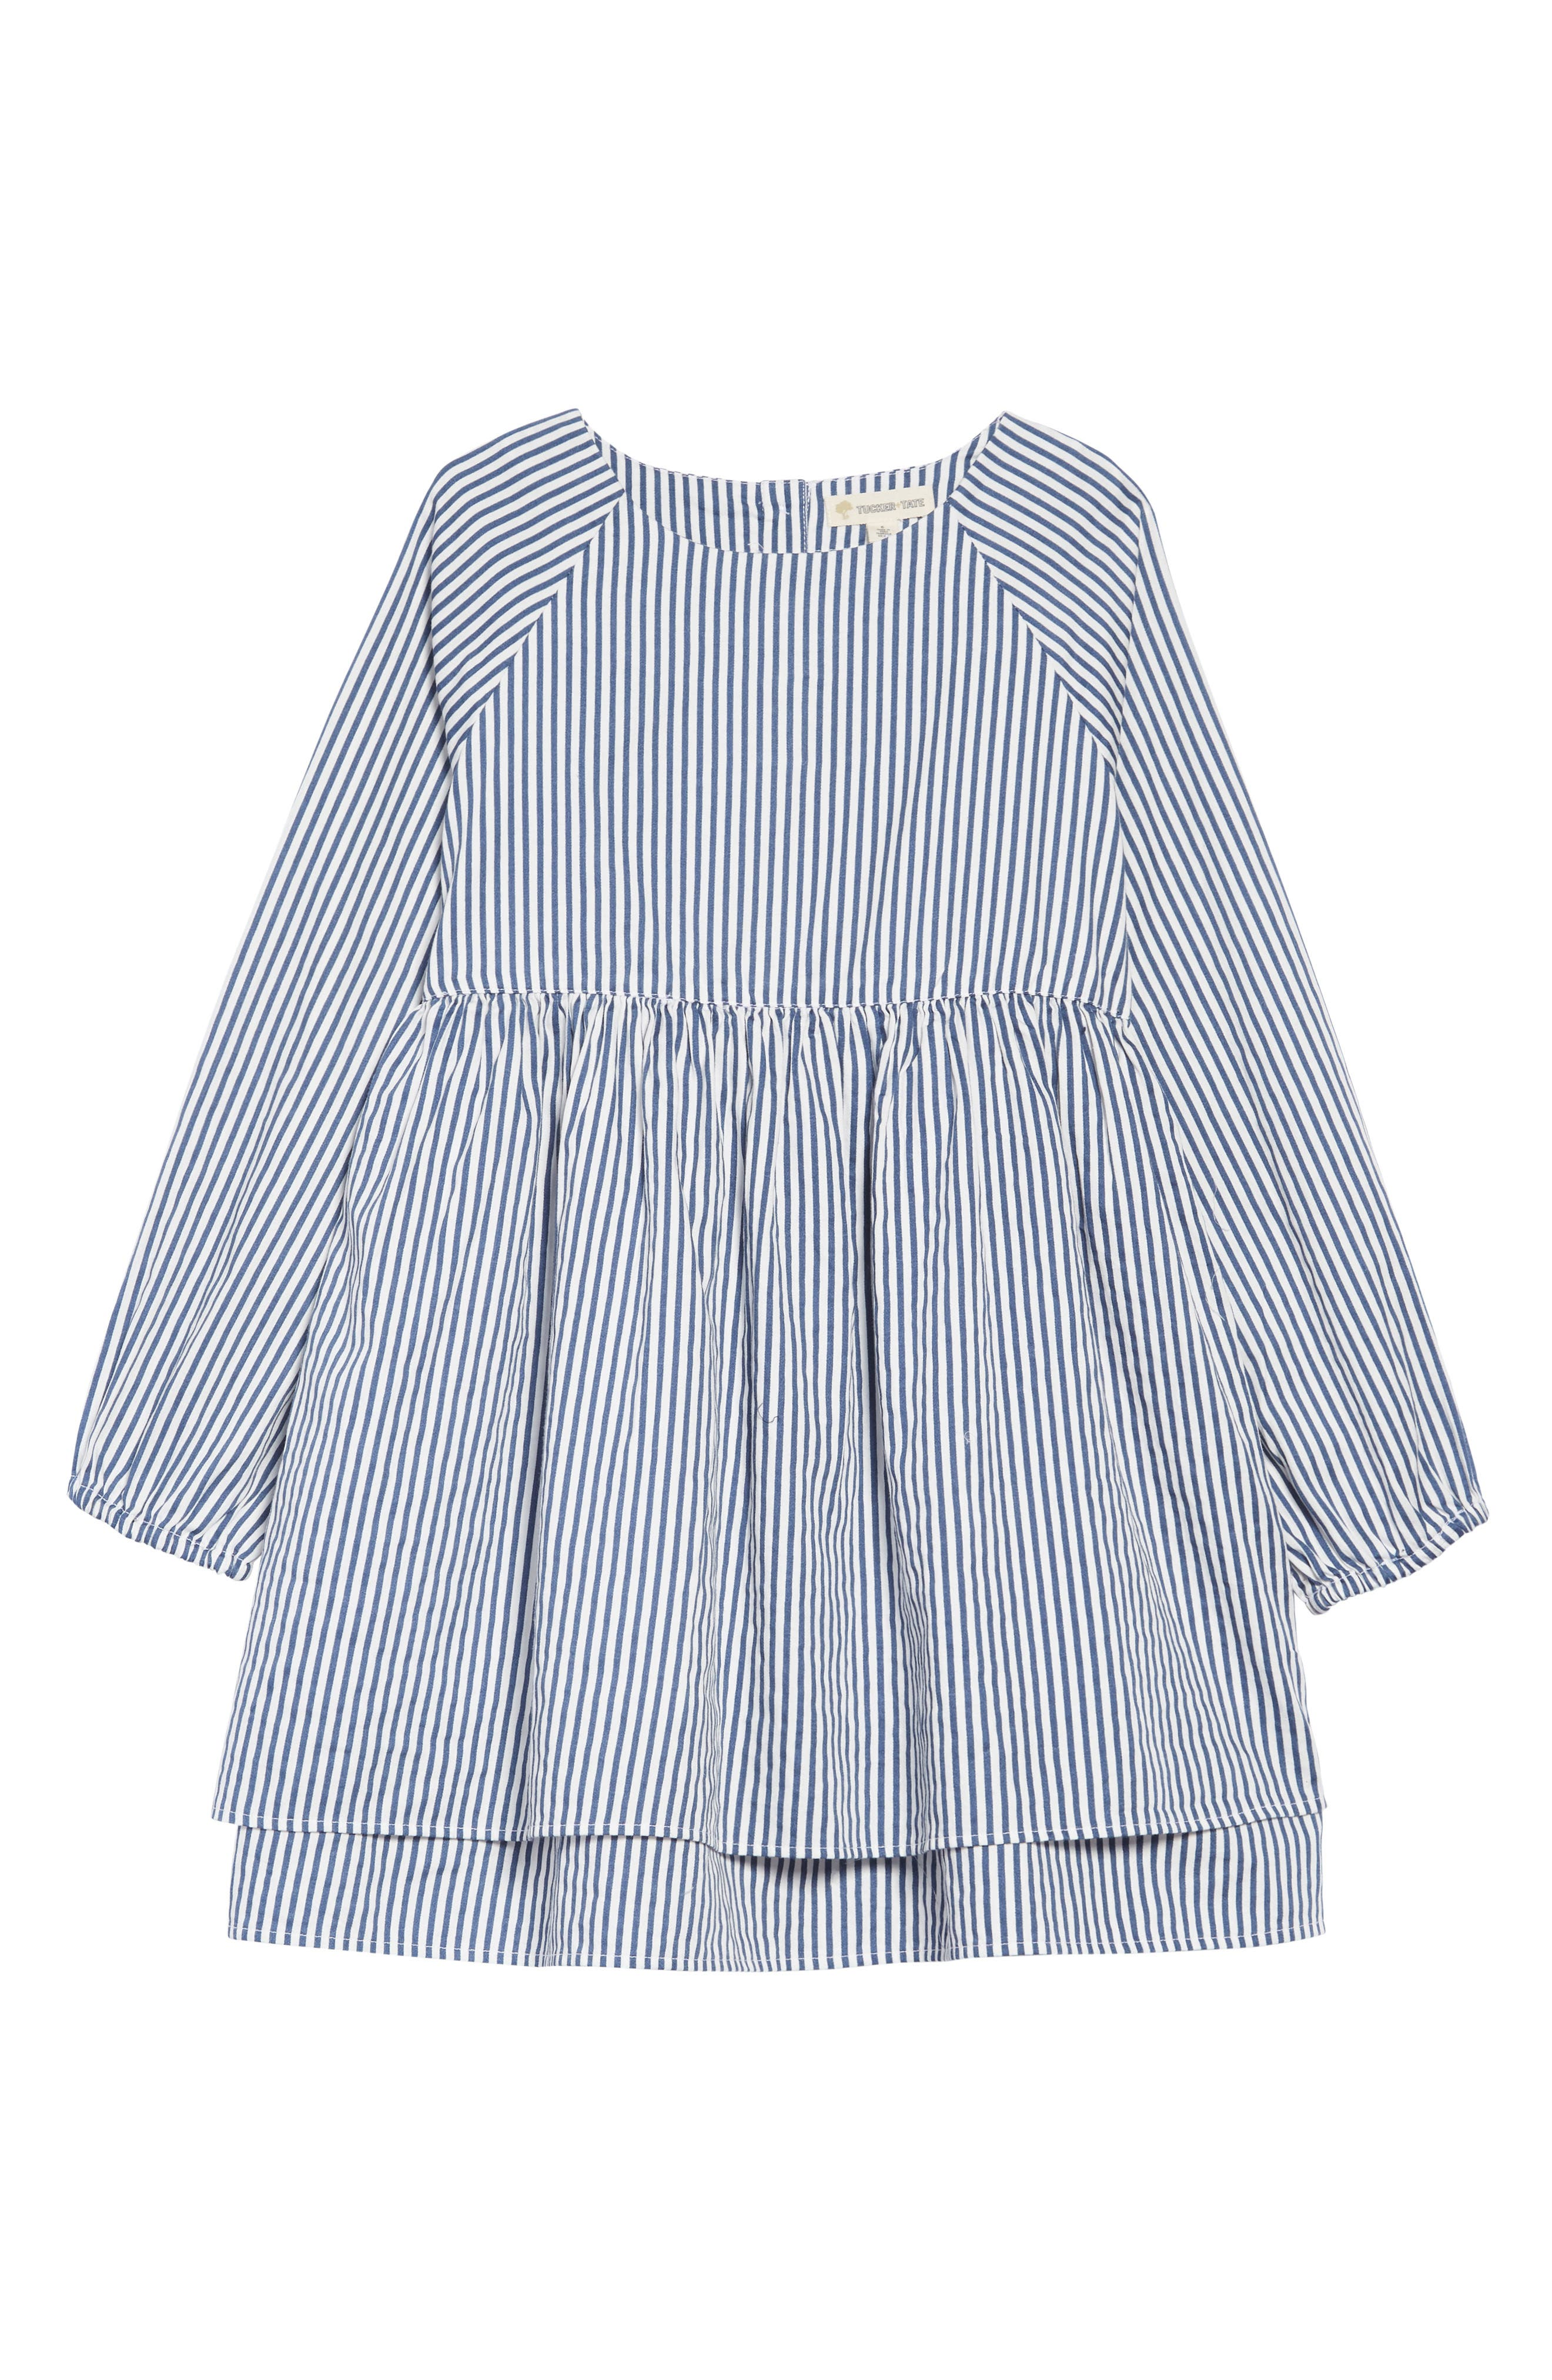 Woven Stripe Dress,                             Main thumbnail 1, color,                             WHITE- NAVY STRIPE